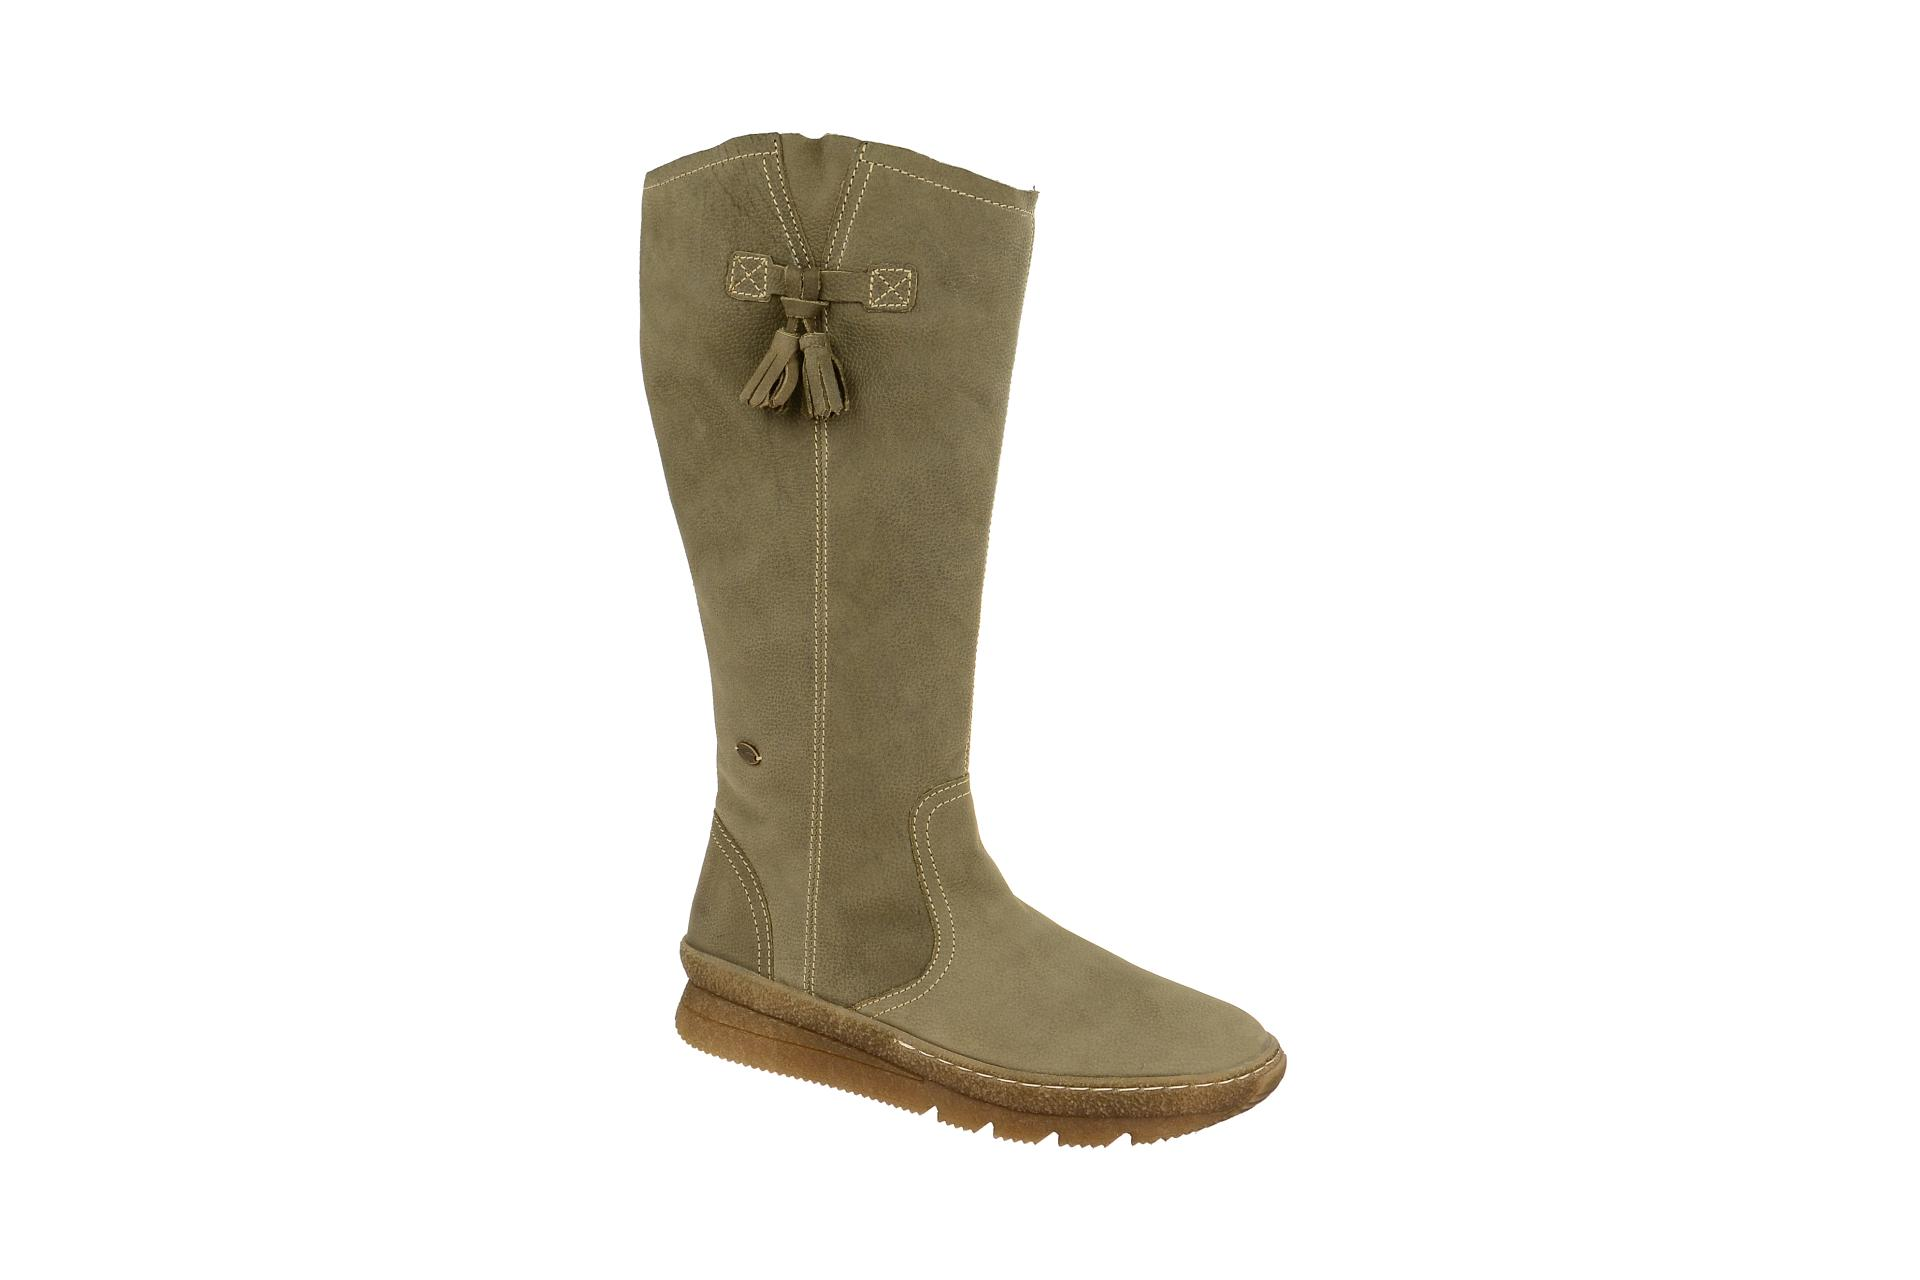 b316b0105be3 camel active Schuhe AUTHENTIC 74 grau Damenstiefel Winterstiefel ...